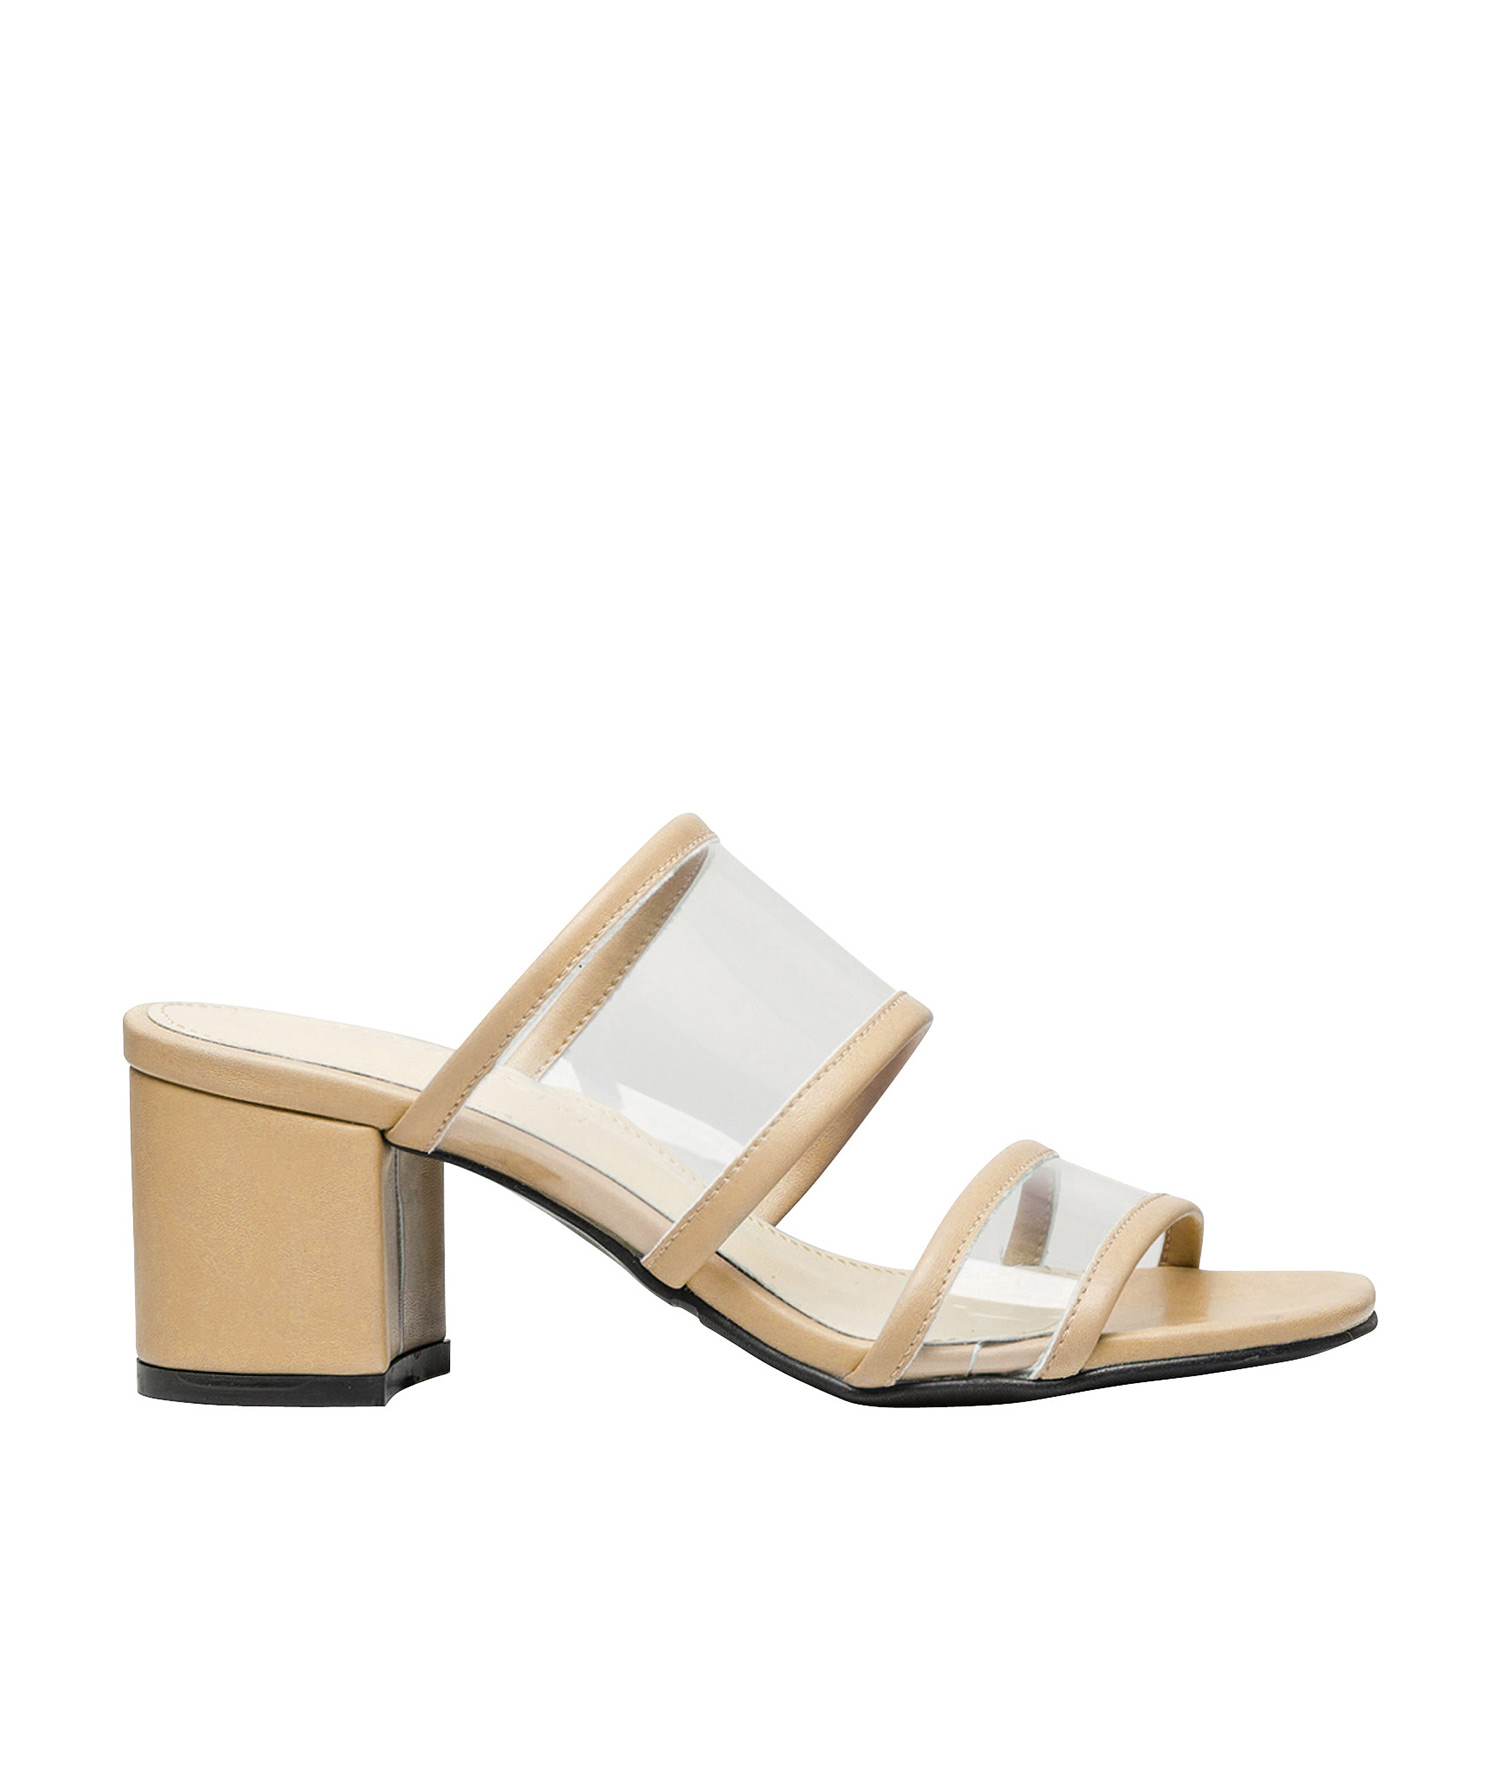 Double Clear Strap Mule Heel Sandals Annakastleshoes Com